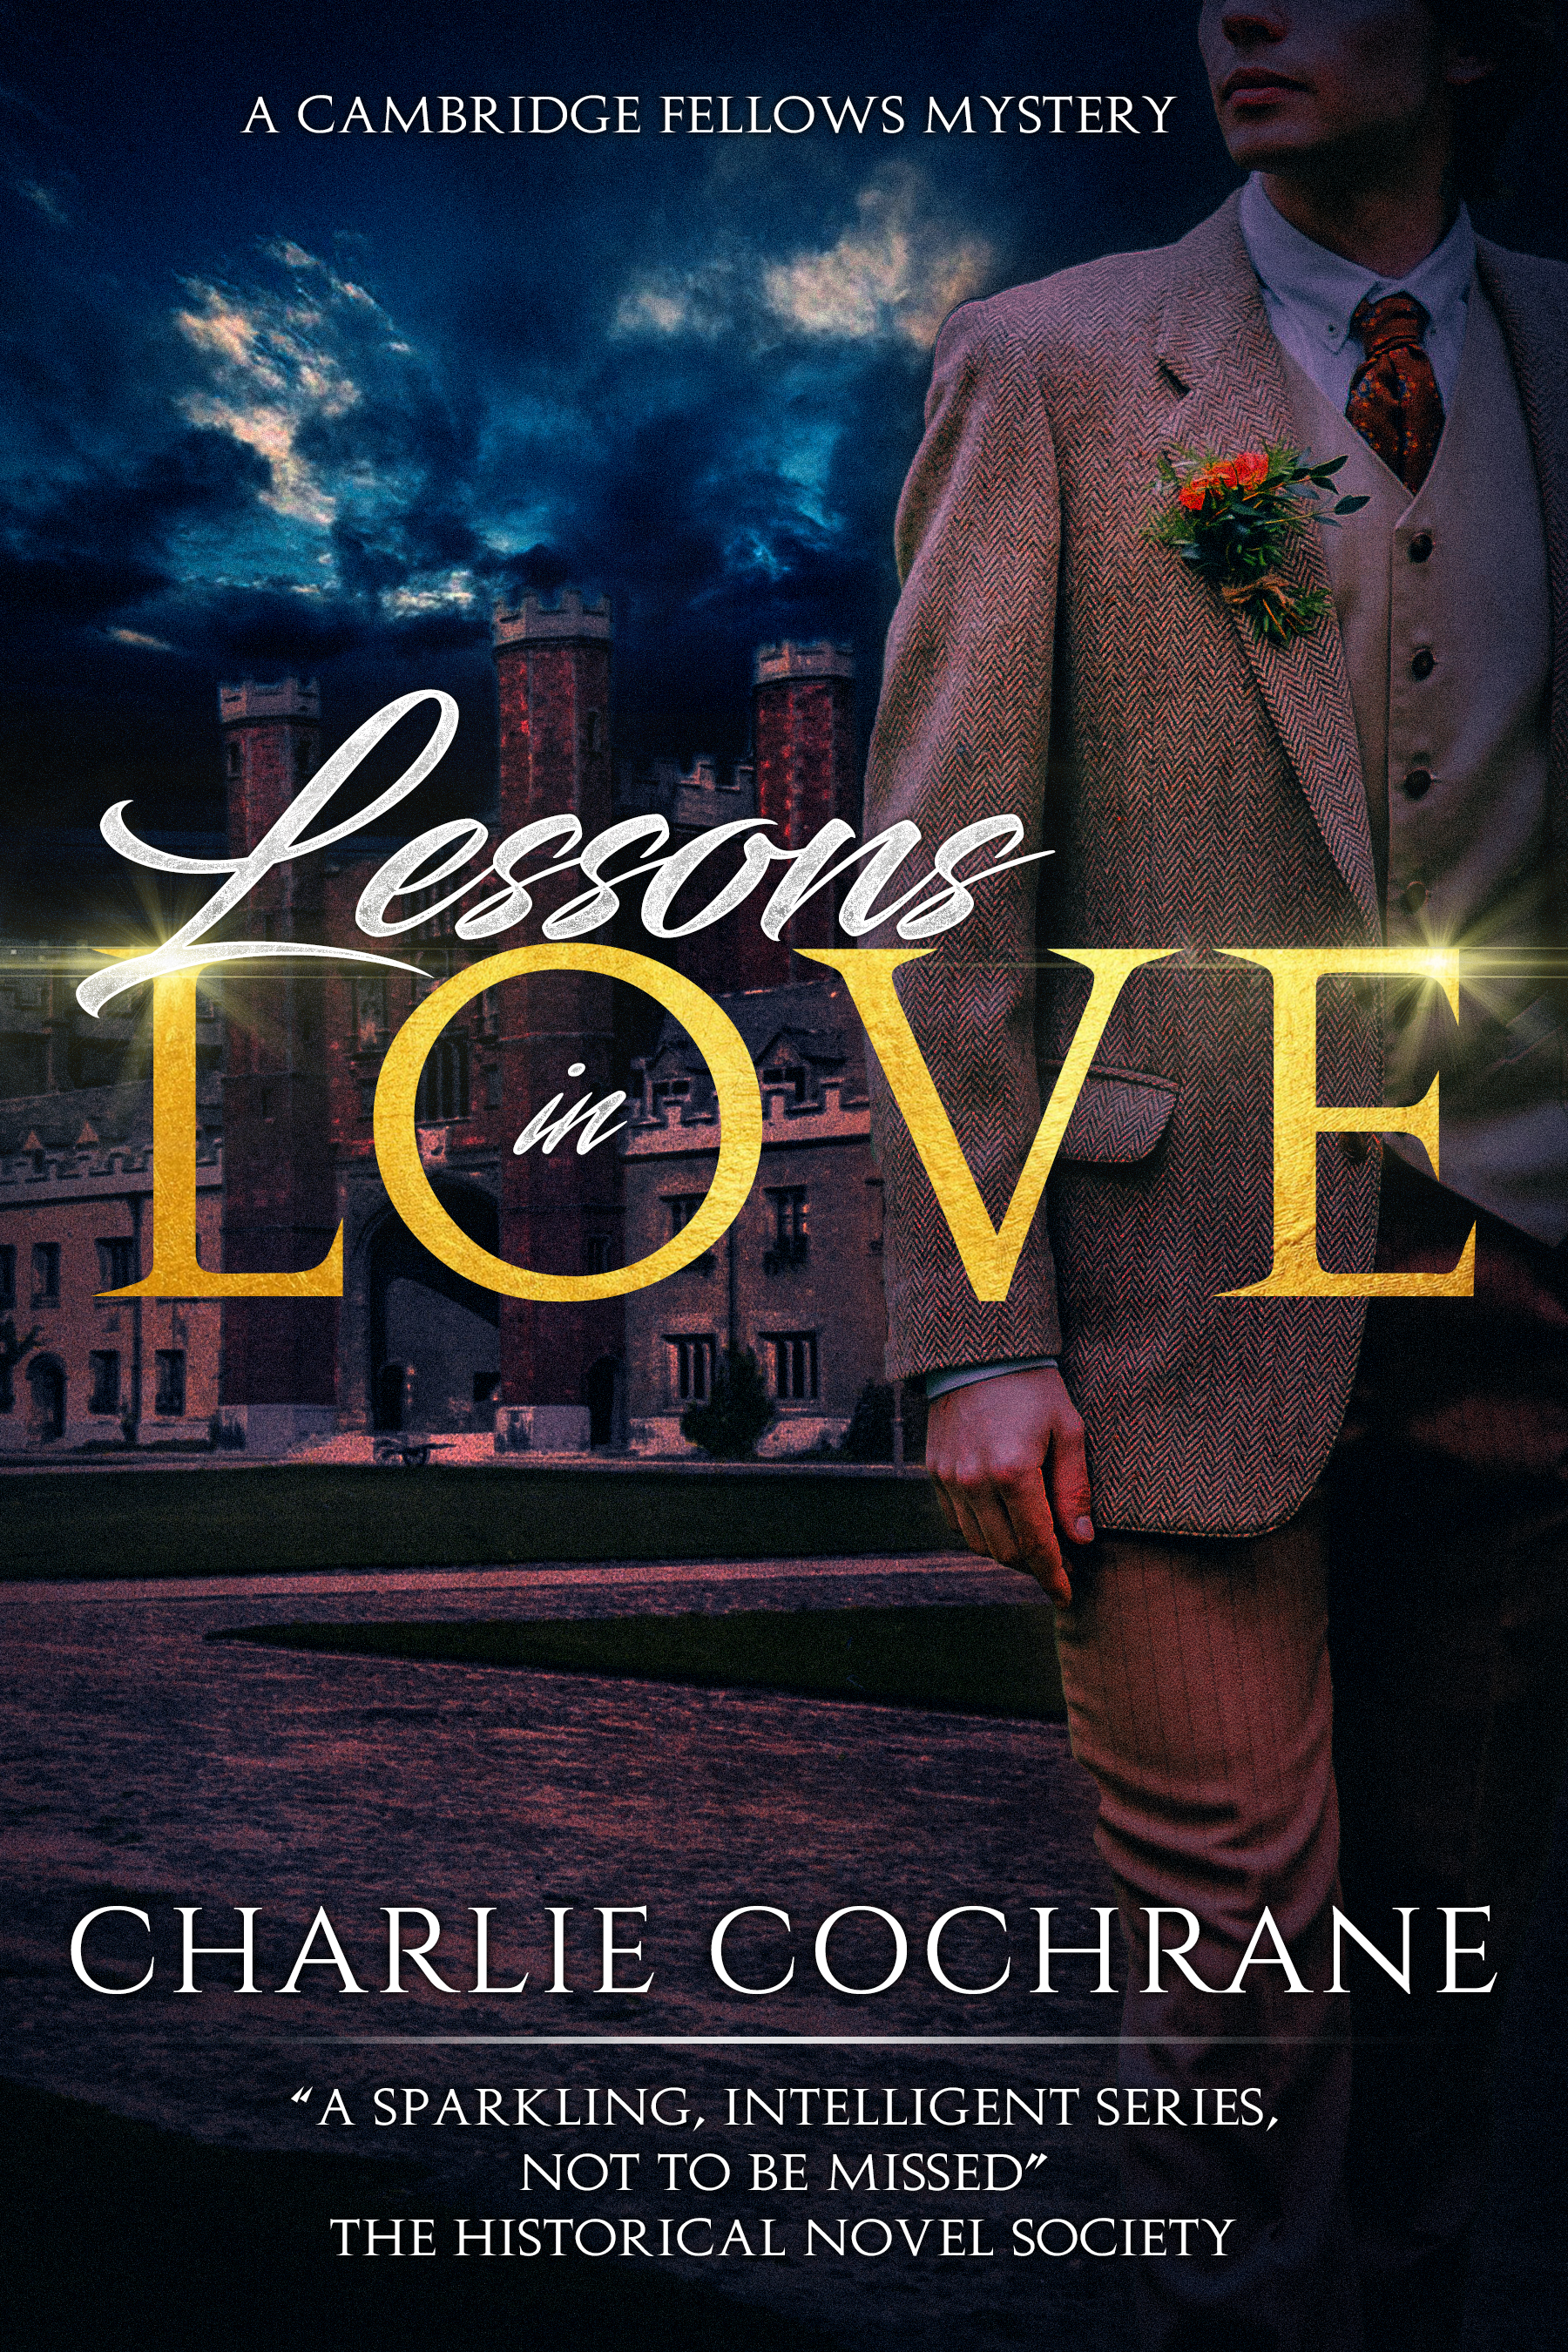 Guest Post and Giveaway: Cambridge Fellows Mysteries by Charlie Cochrane